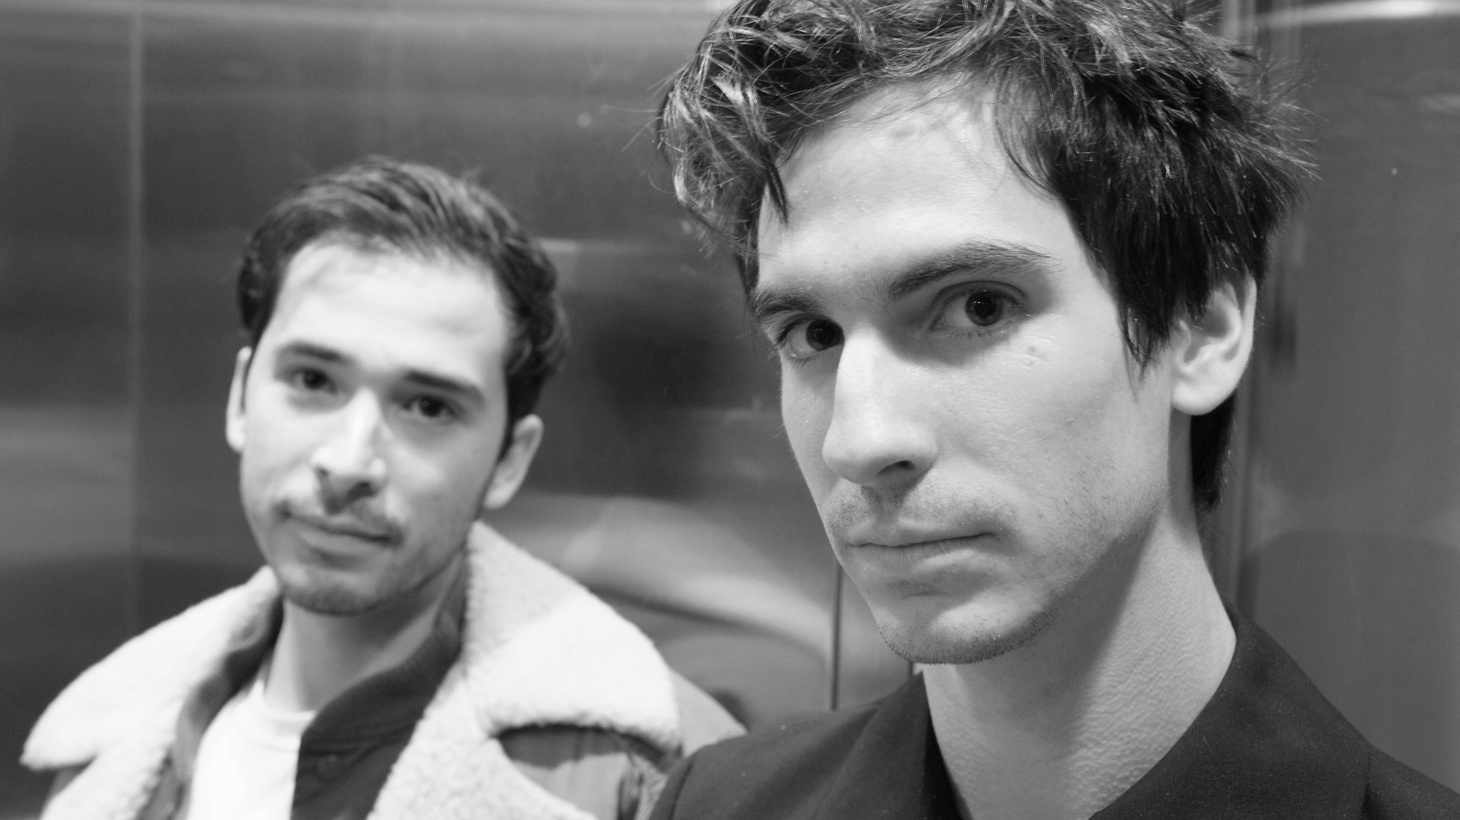 """LA disco-not-disco duo De Lux says this about its albums leading up to the latest: """"We like to say Voyage was our baby, Generation was our baby all grown up and More Disco Songs about Love thinks growing up sucks and just wants to party smart."""""""